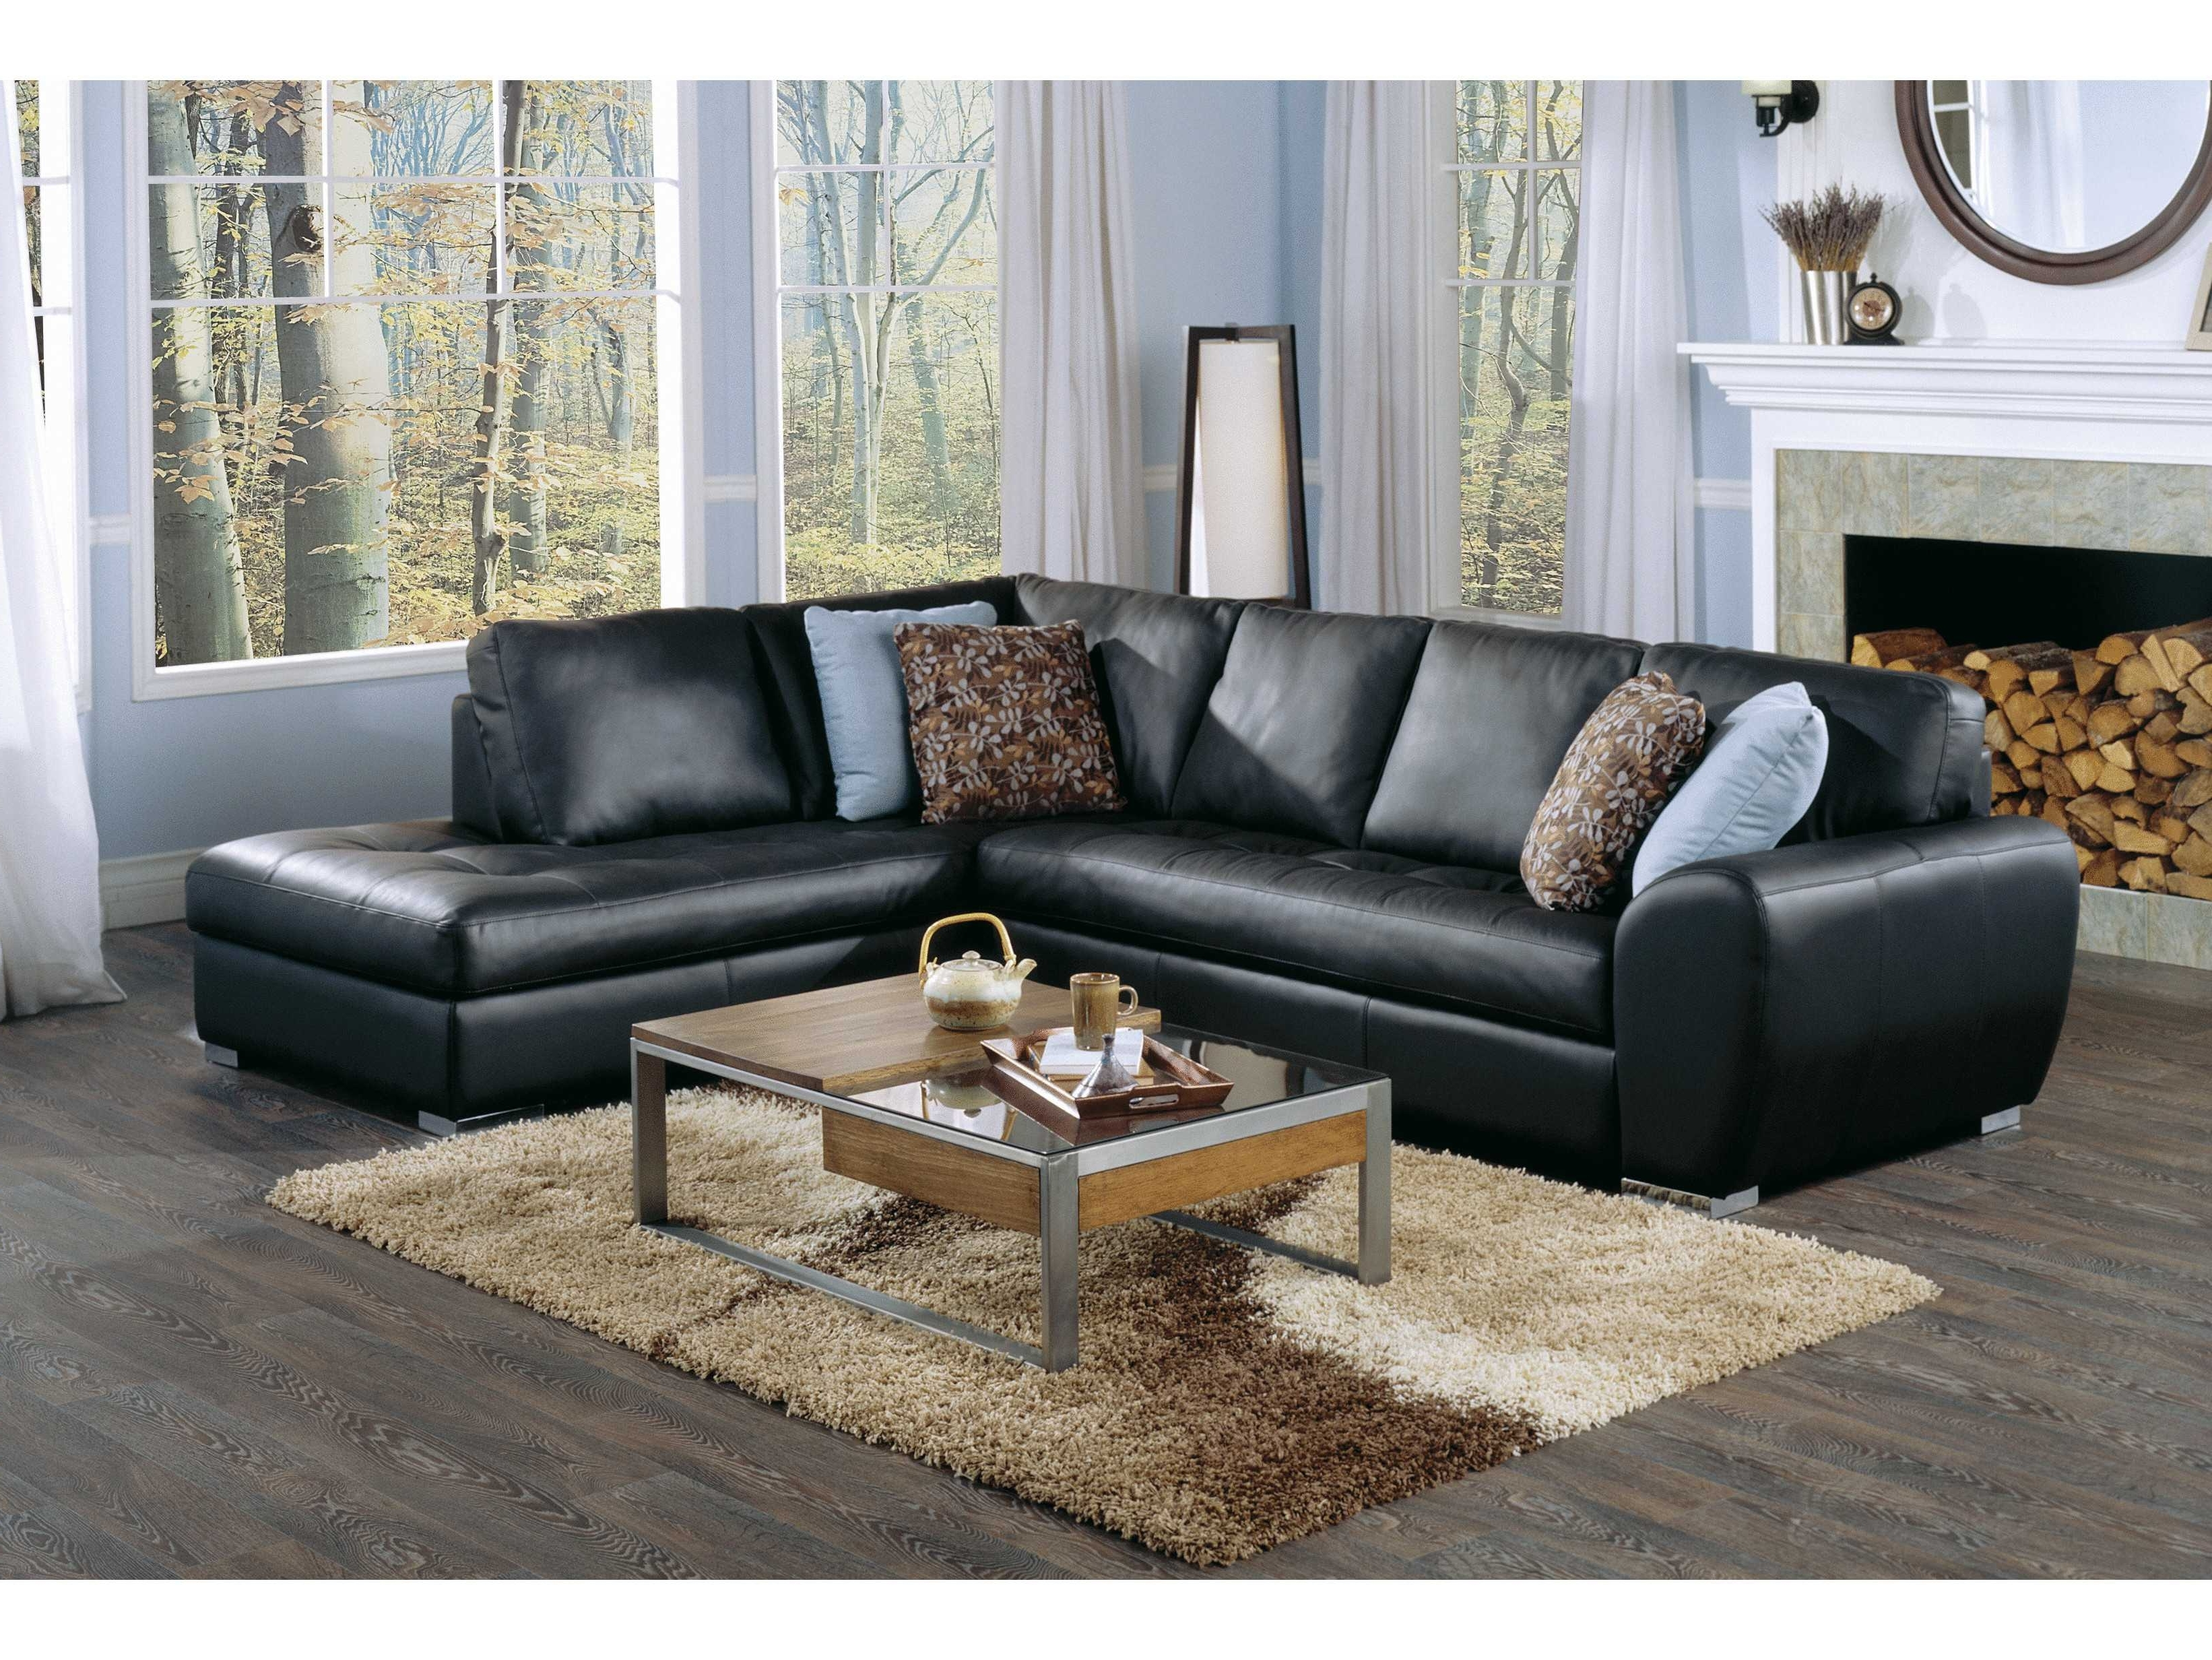 Pl77857Sc1 With Kelowna Sectional Sofas (View 13 of 15)